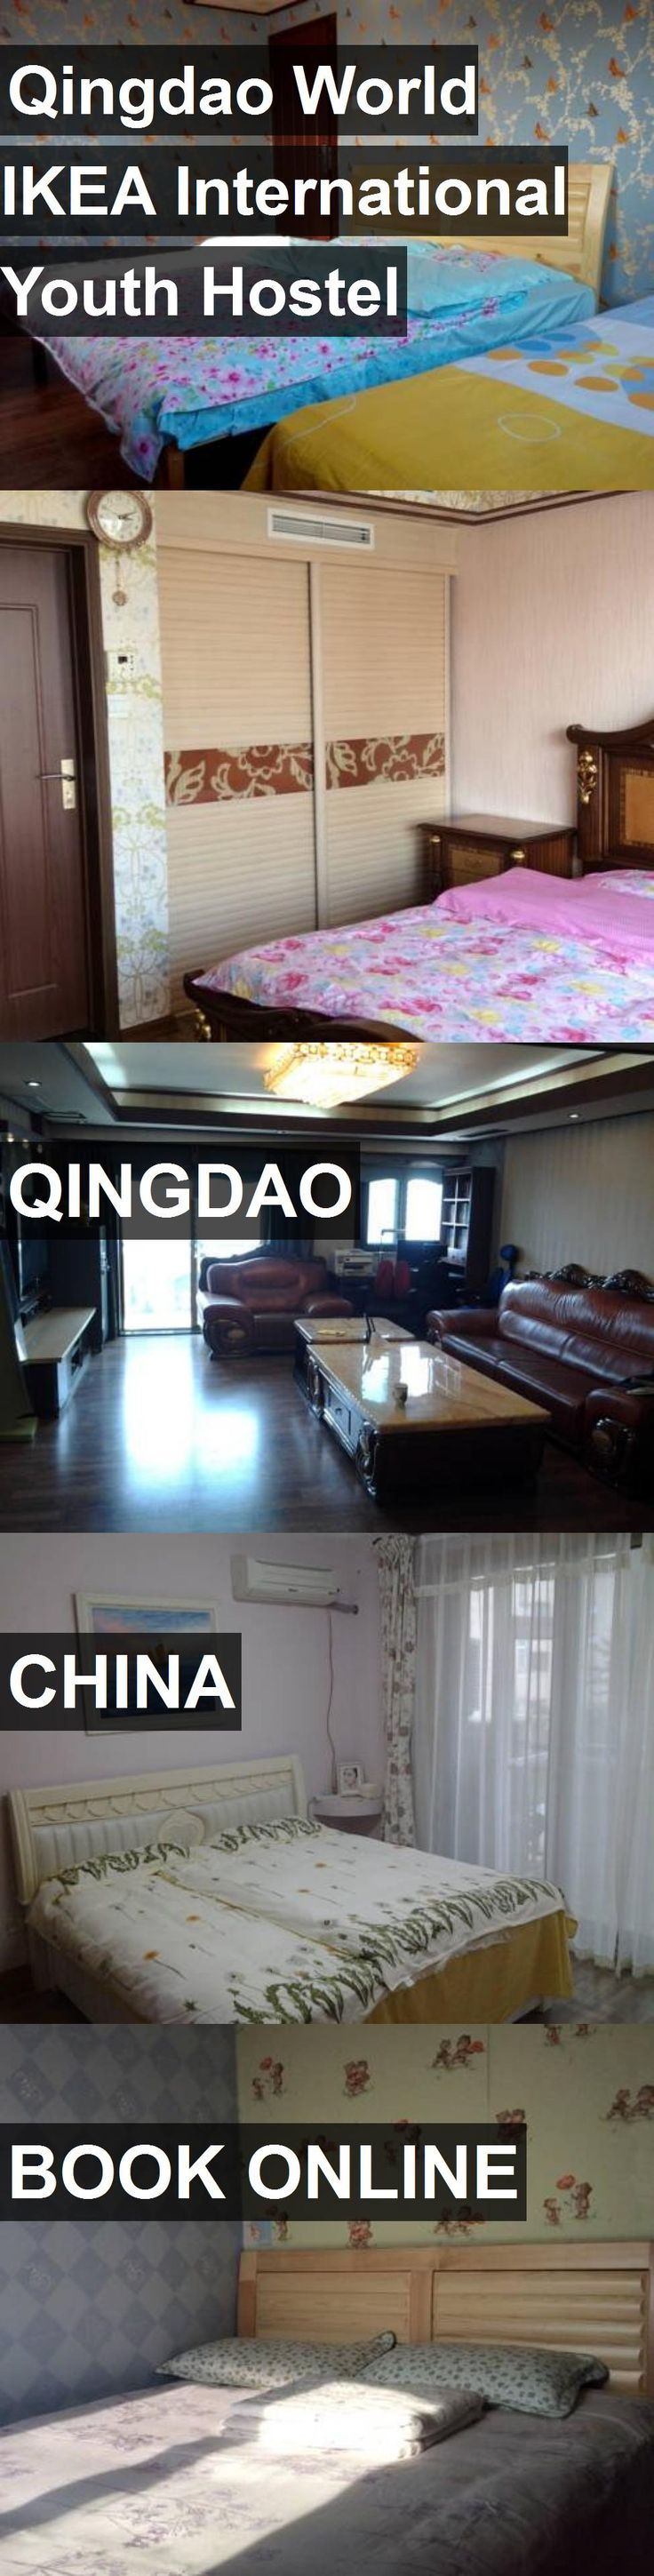 Qingdao World IKEA International Youth Hostel in Qingdao, China. For more information, photos, reviews and best prices please follow the link. #China #Qingdao #travel #vacation #hostel